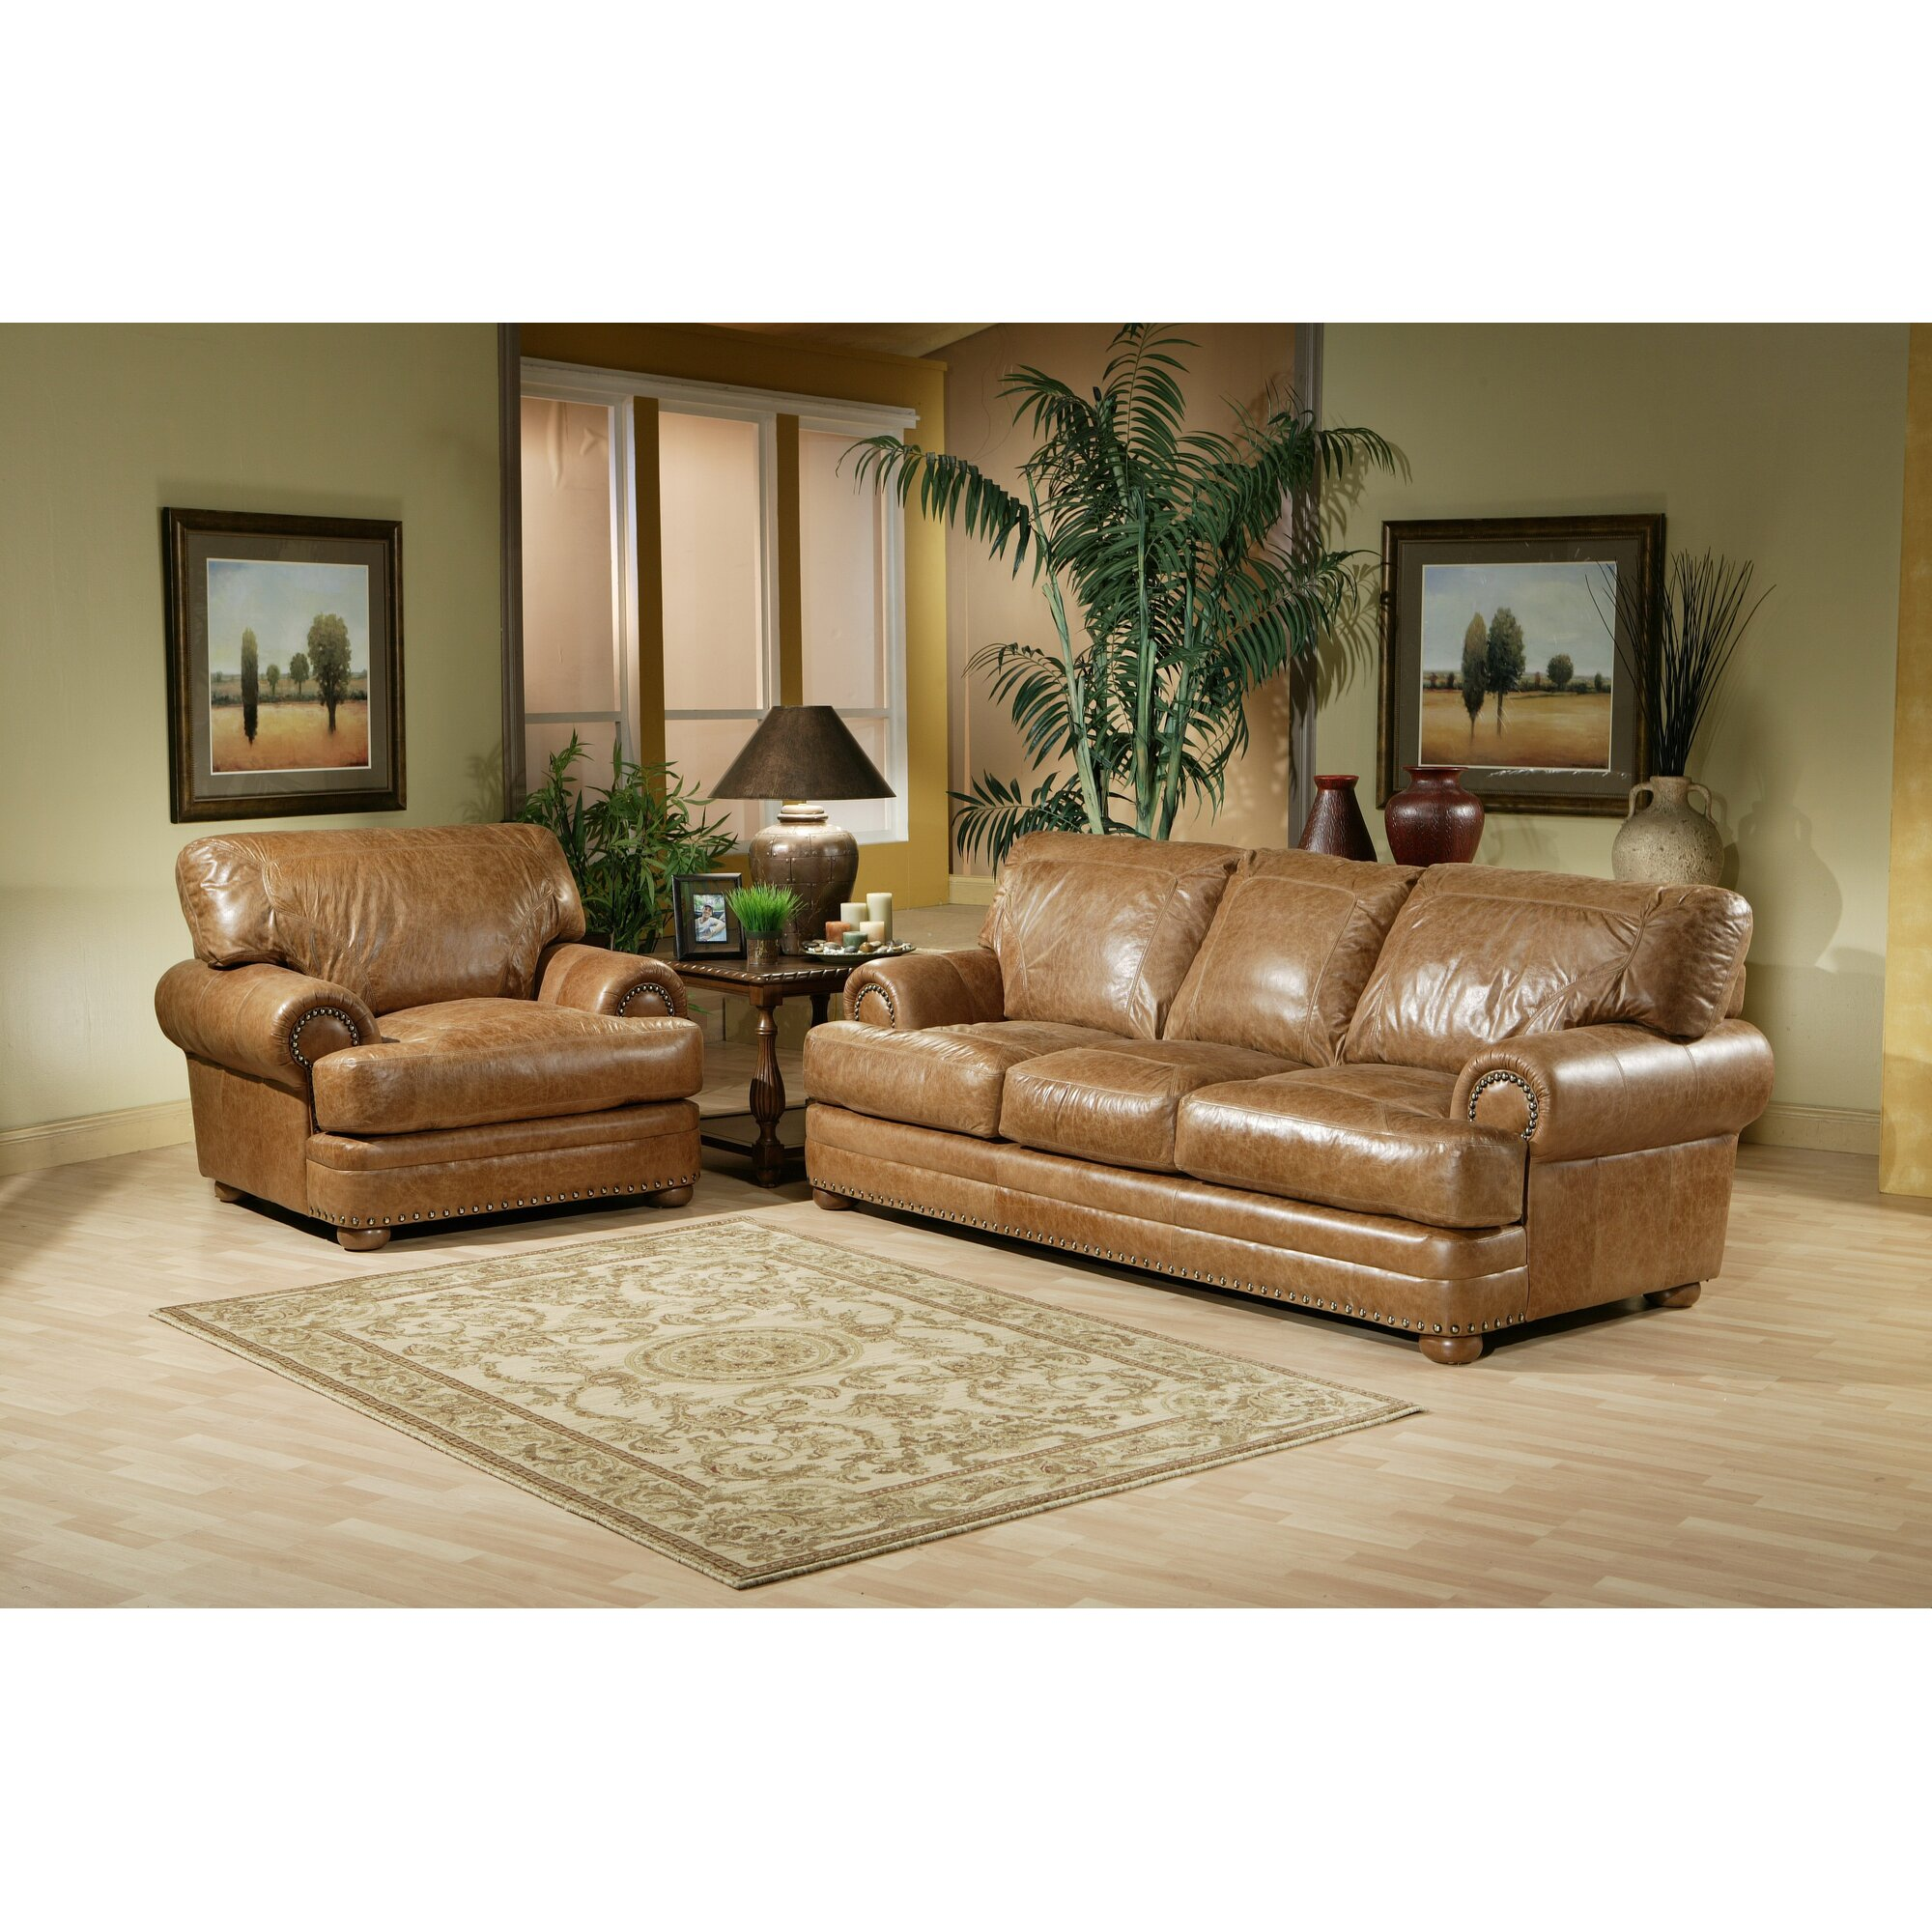 Omnia leather houston leather living room set reviews for Wg r living room sets